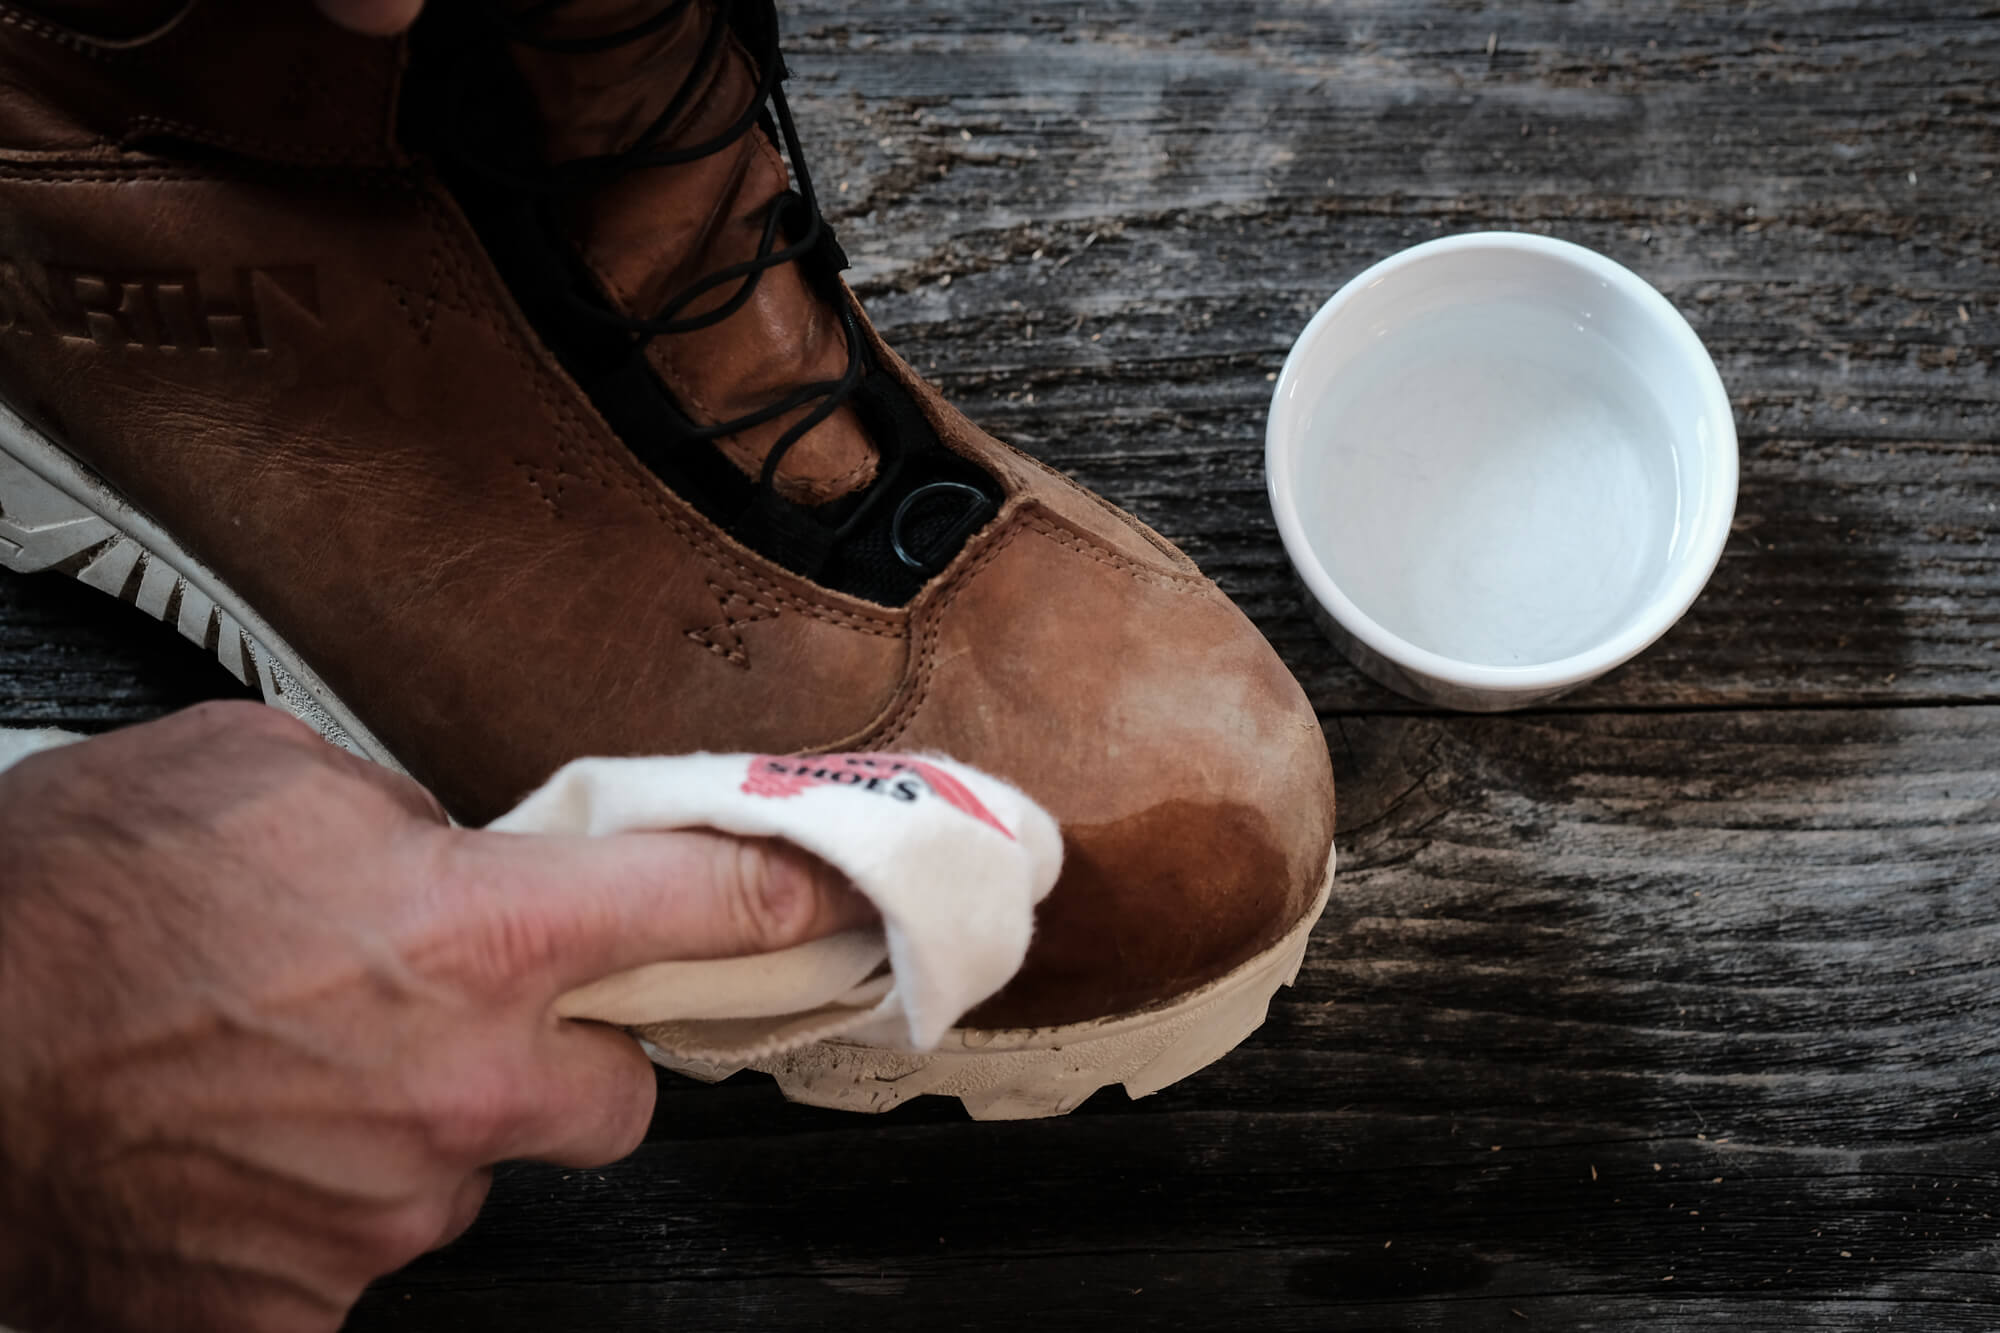 Wiping the 45NRTH Red Wing Wölvhammer cycling boot with a Red Wing cloth and small dish of water